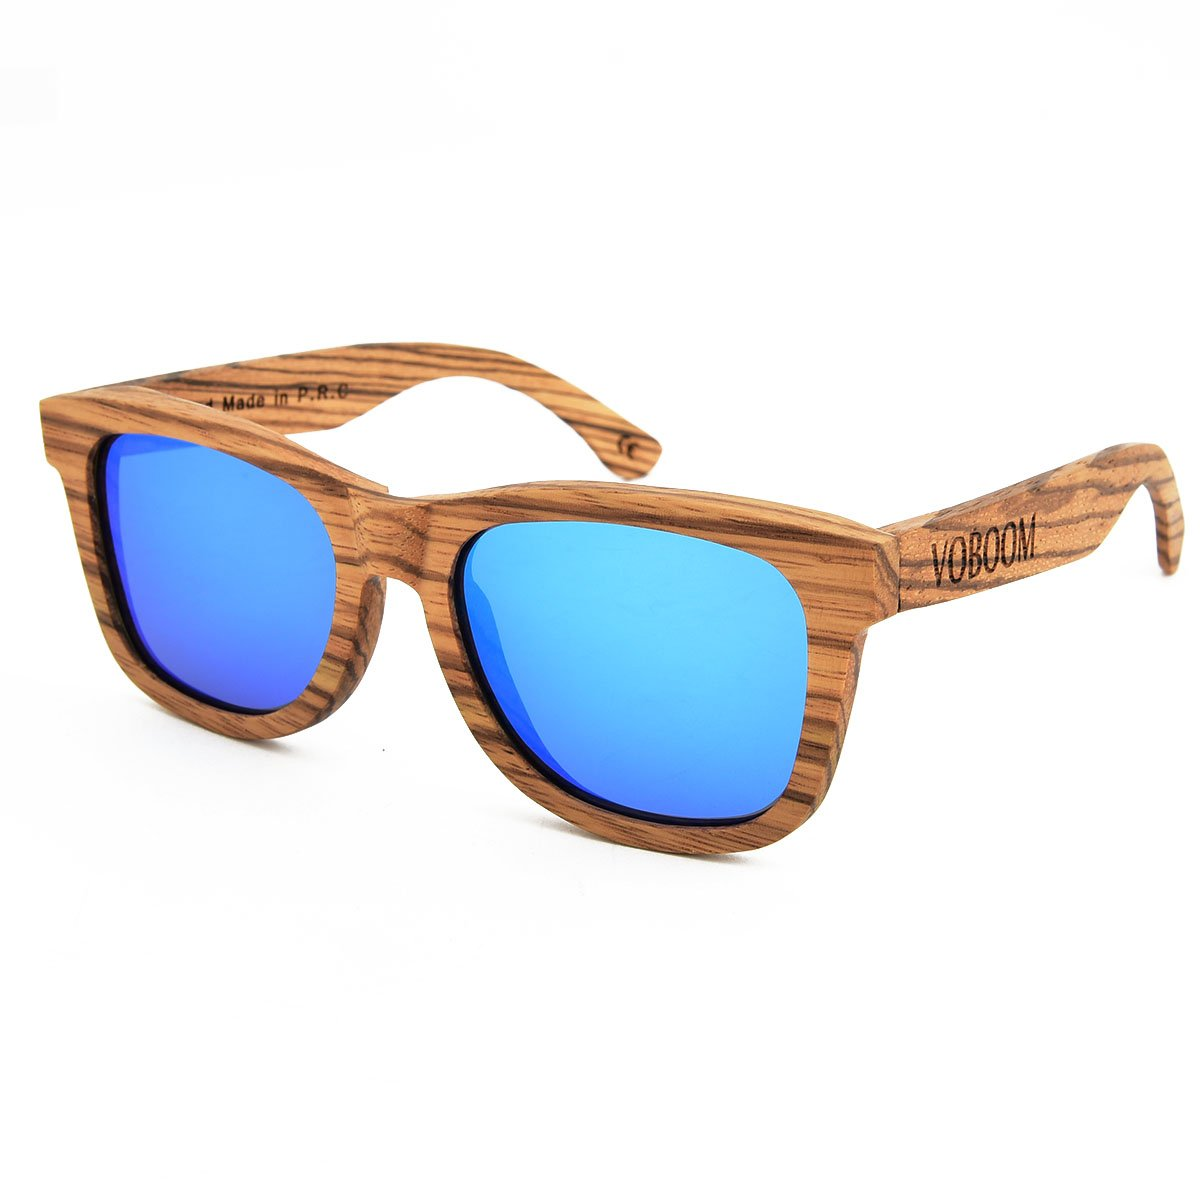 fc1b23fc7a VOBOOM® Polarized Bamboo Wooden Arms Mens Womens Vintage Sunglasses Eyewear  with original package G-S002-B (Blue Mirrored)  Amazon.co.uk  Clothing